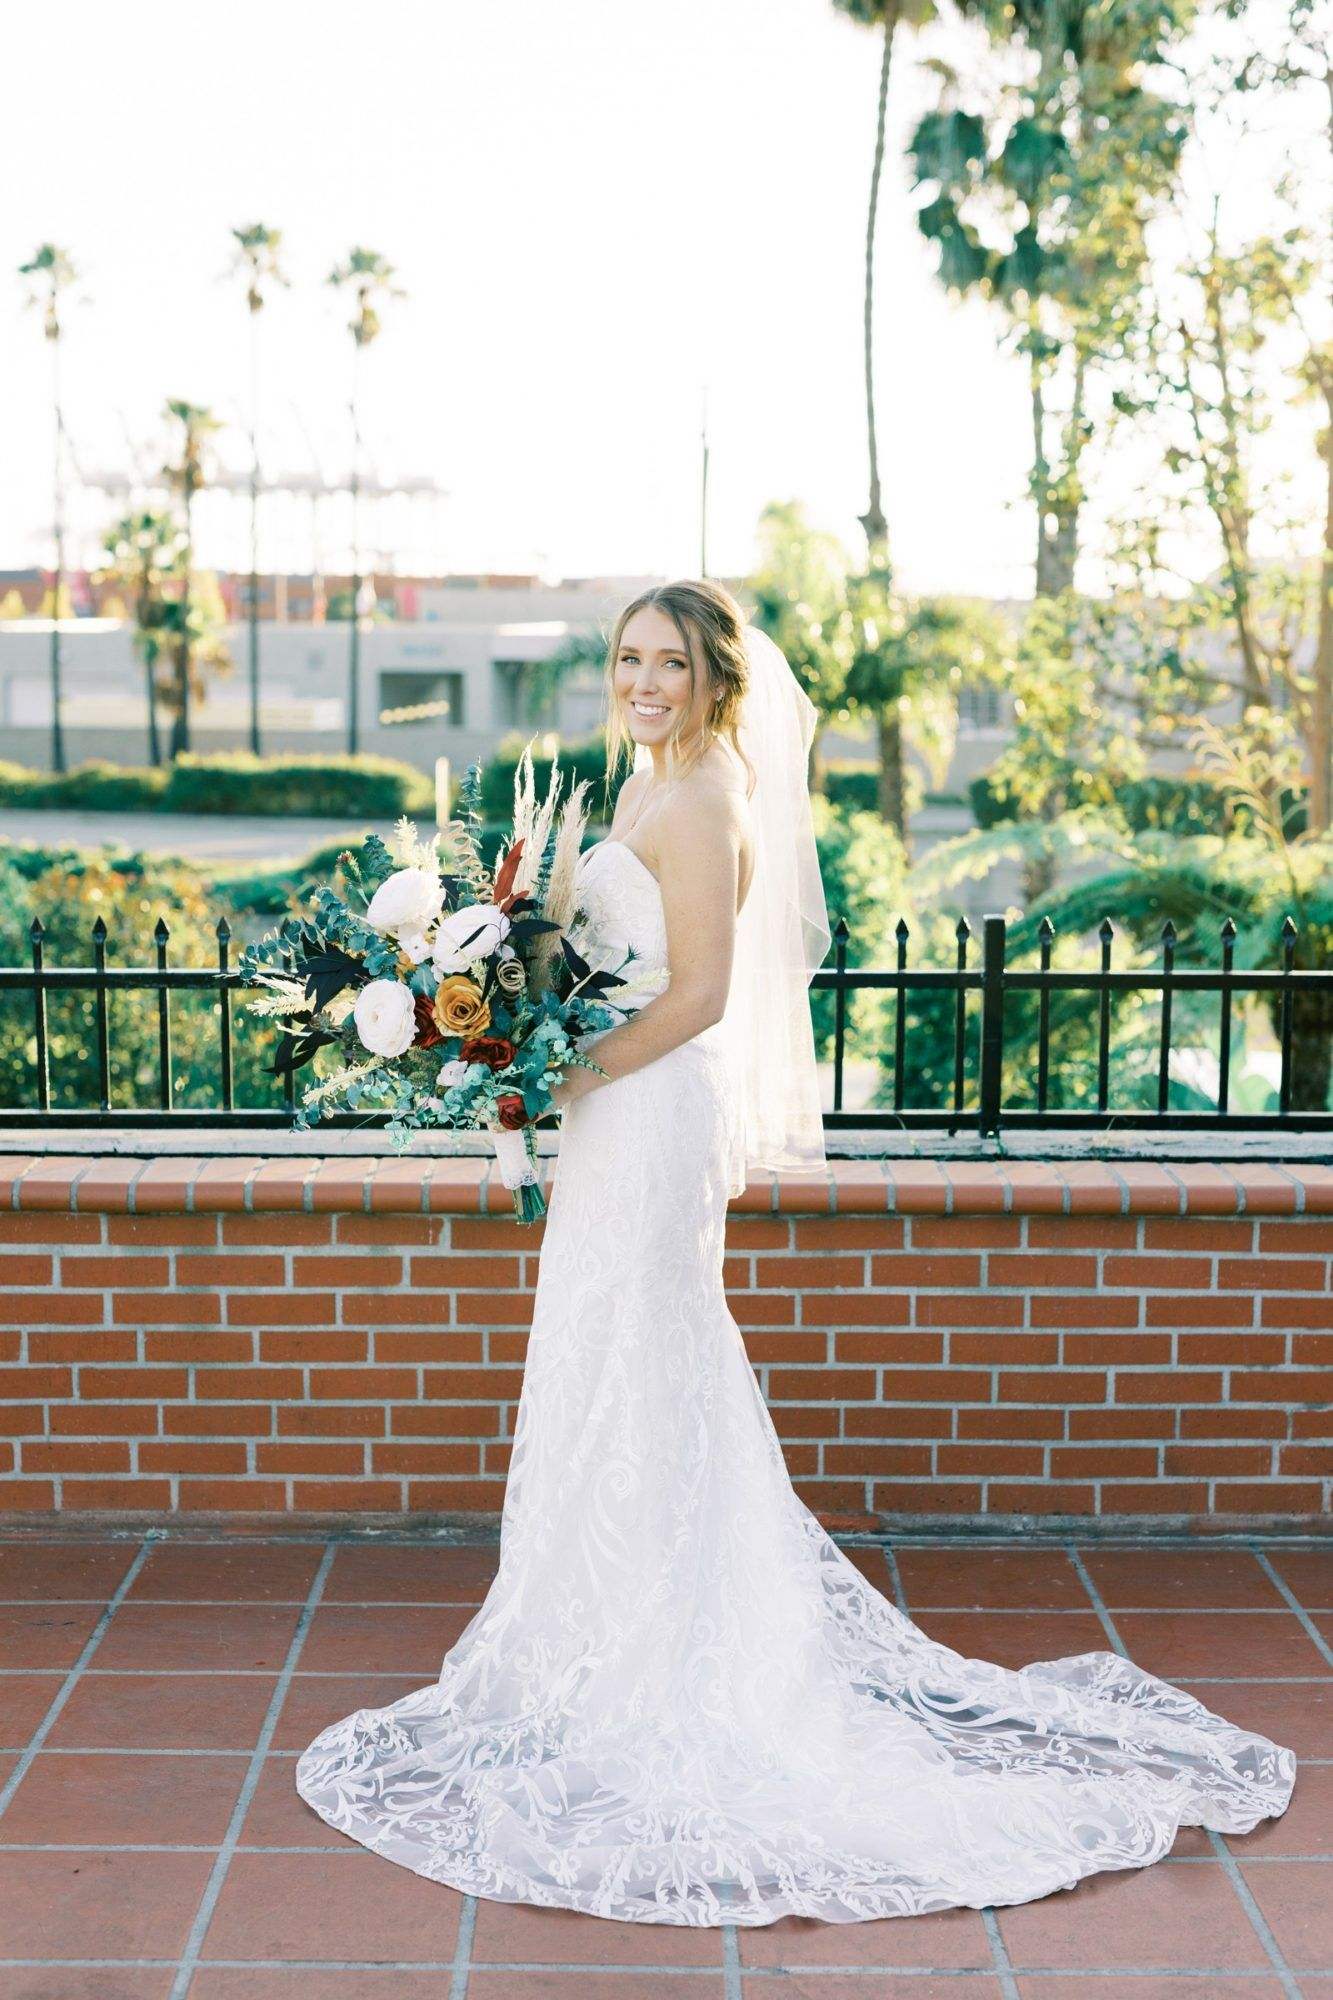 Looking for affordable California wedding venues? Check